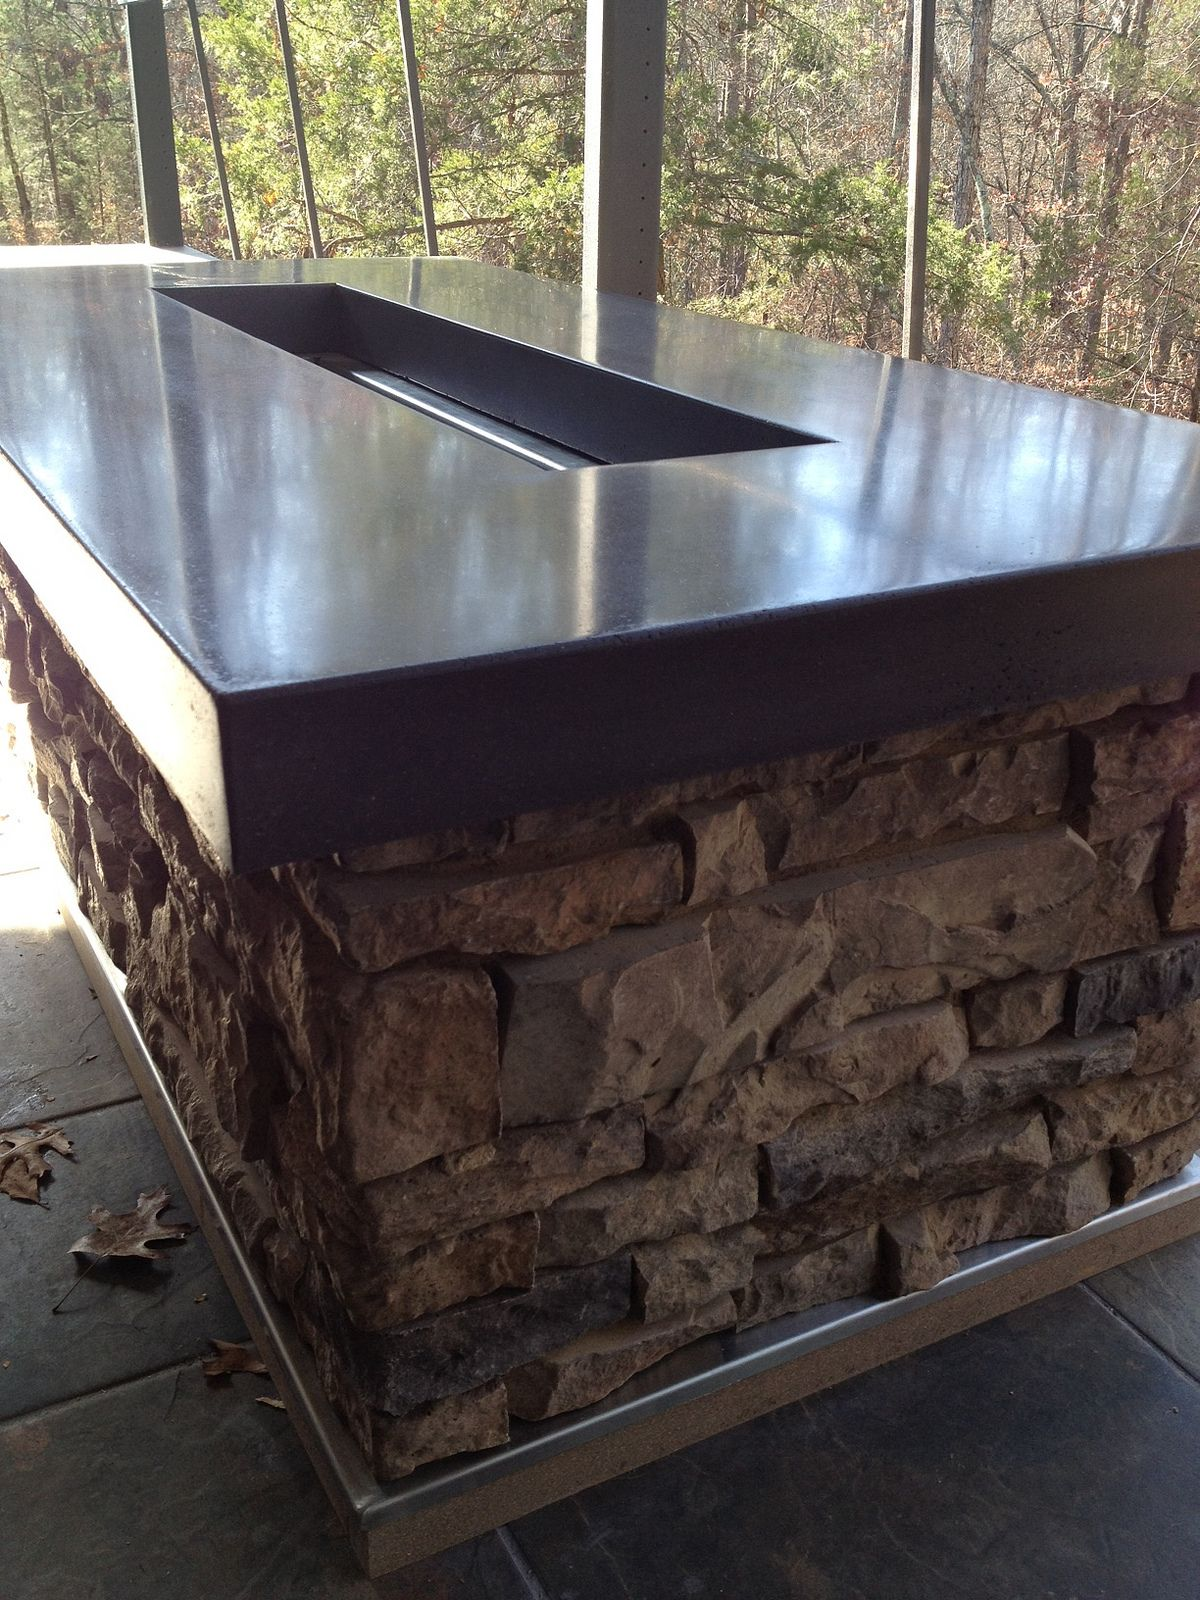 Polished Concrete Fire Pit In Goode Va Fire Pit Decor Polished Concrete Wood Fire Pit